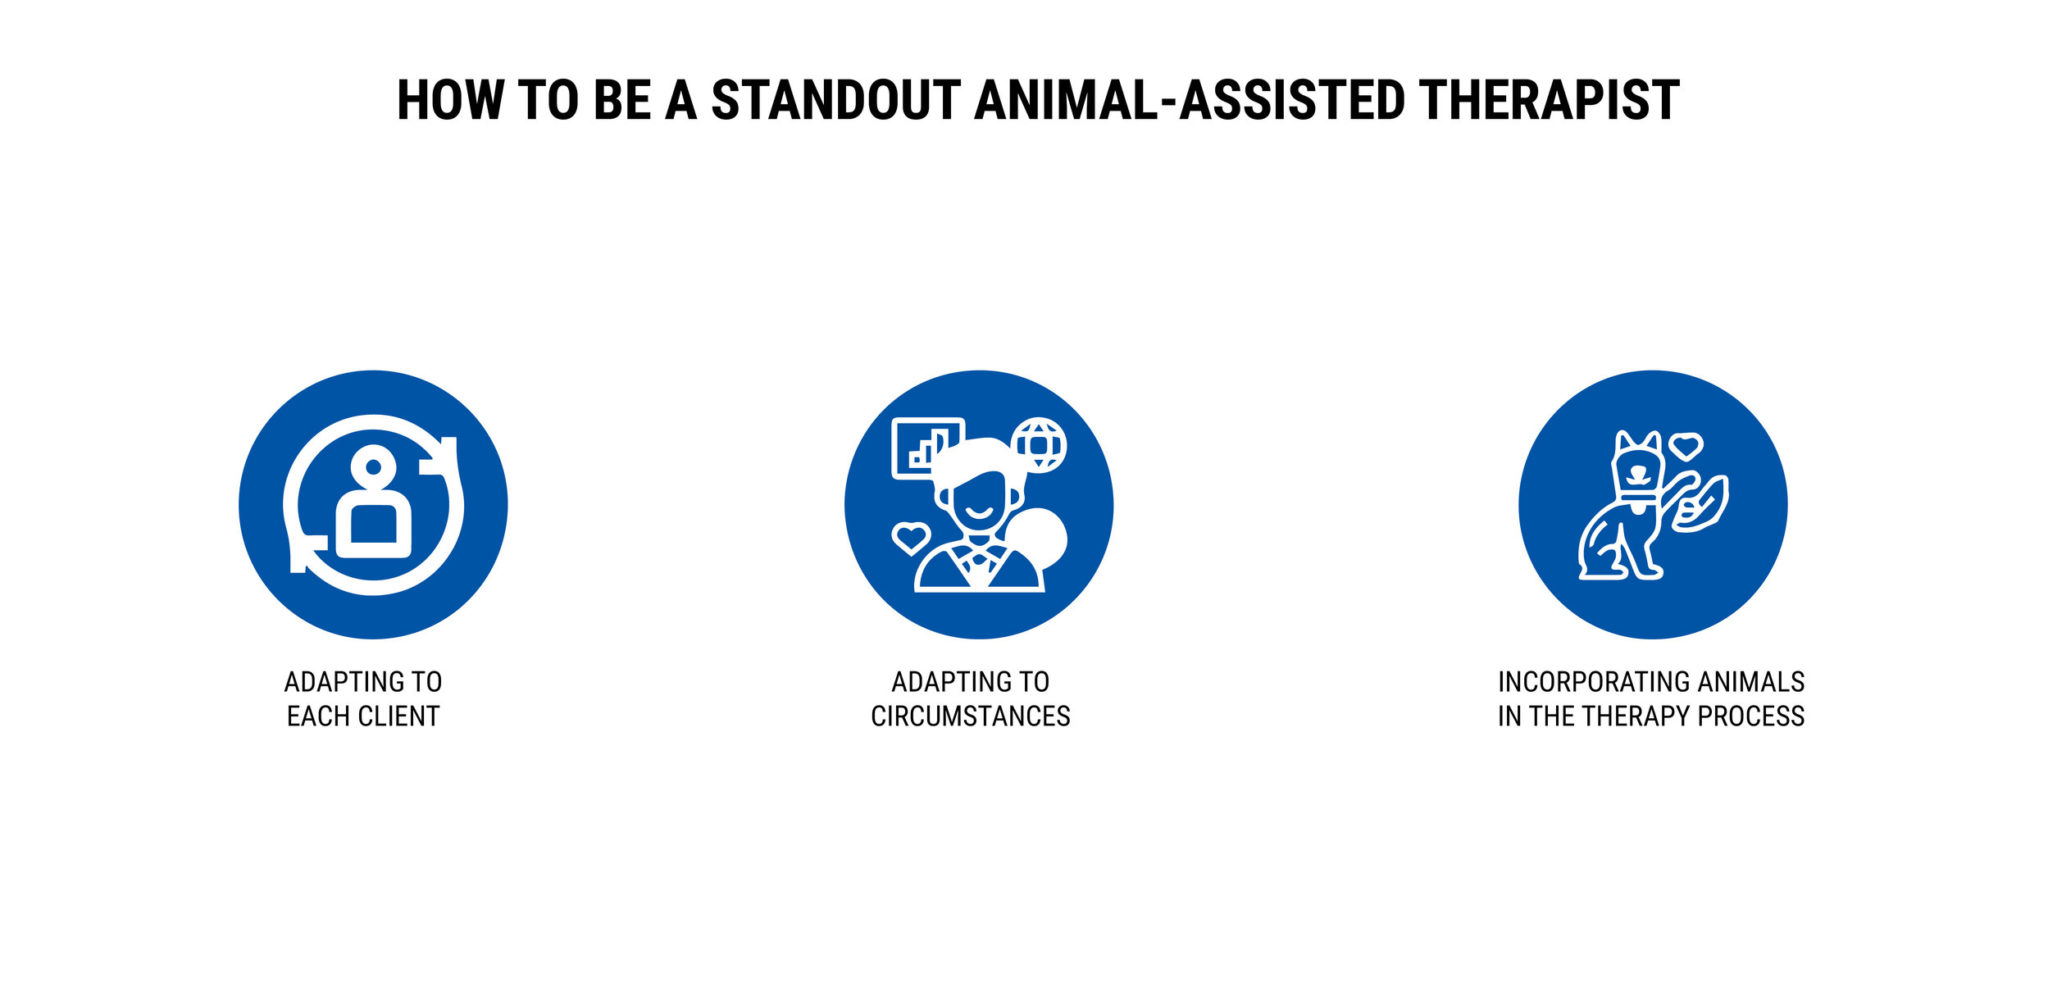 HOW TO BE A STANDOUT ANIMAL-ASSISTED THERAPIST